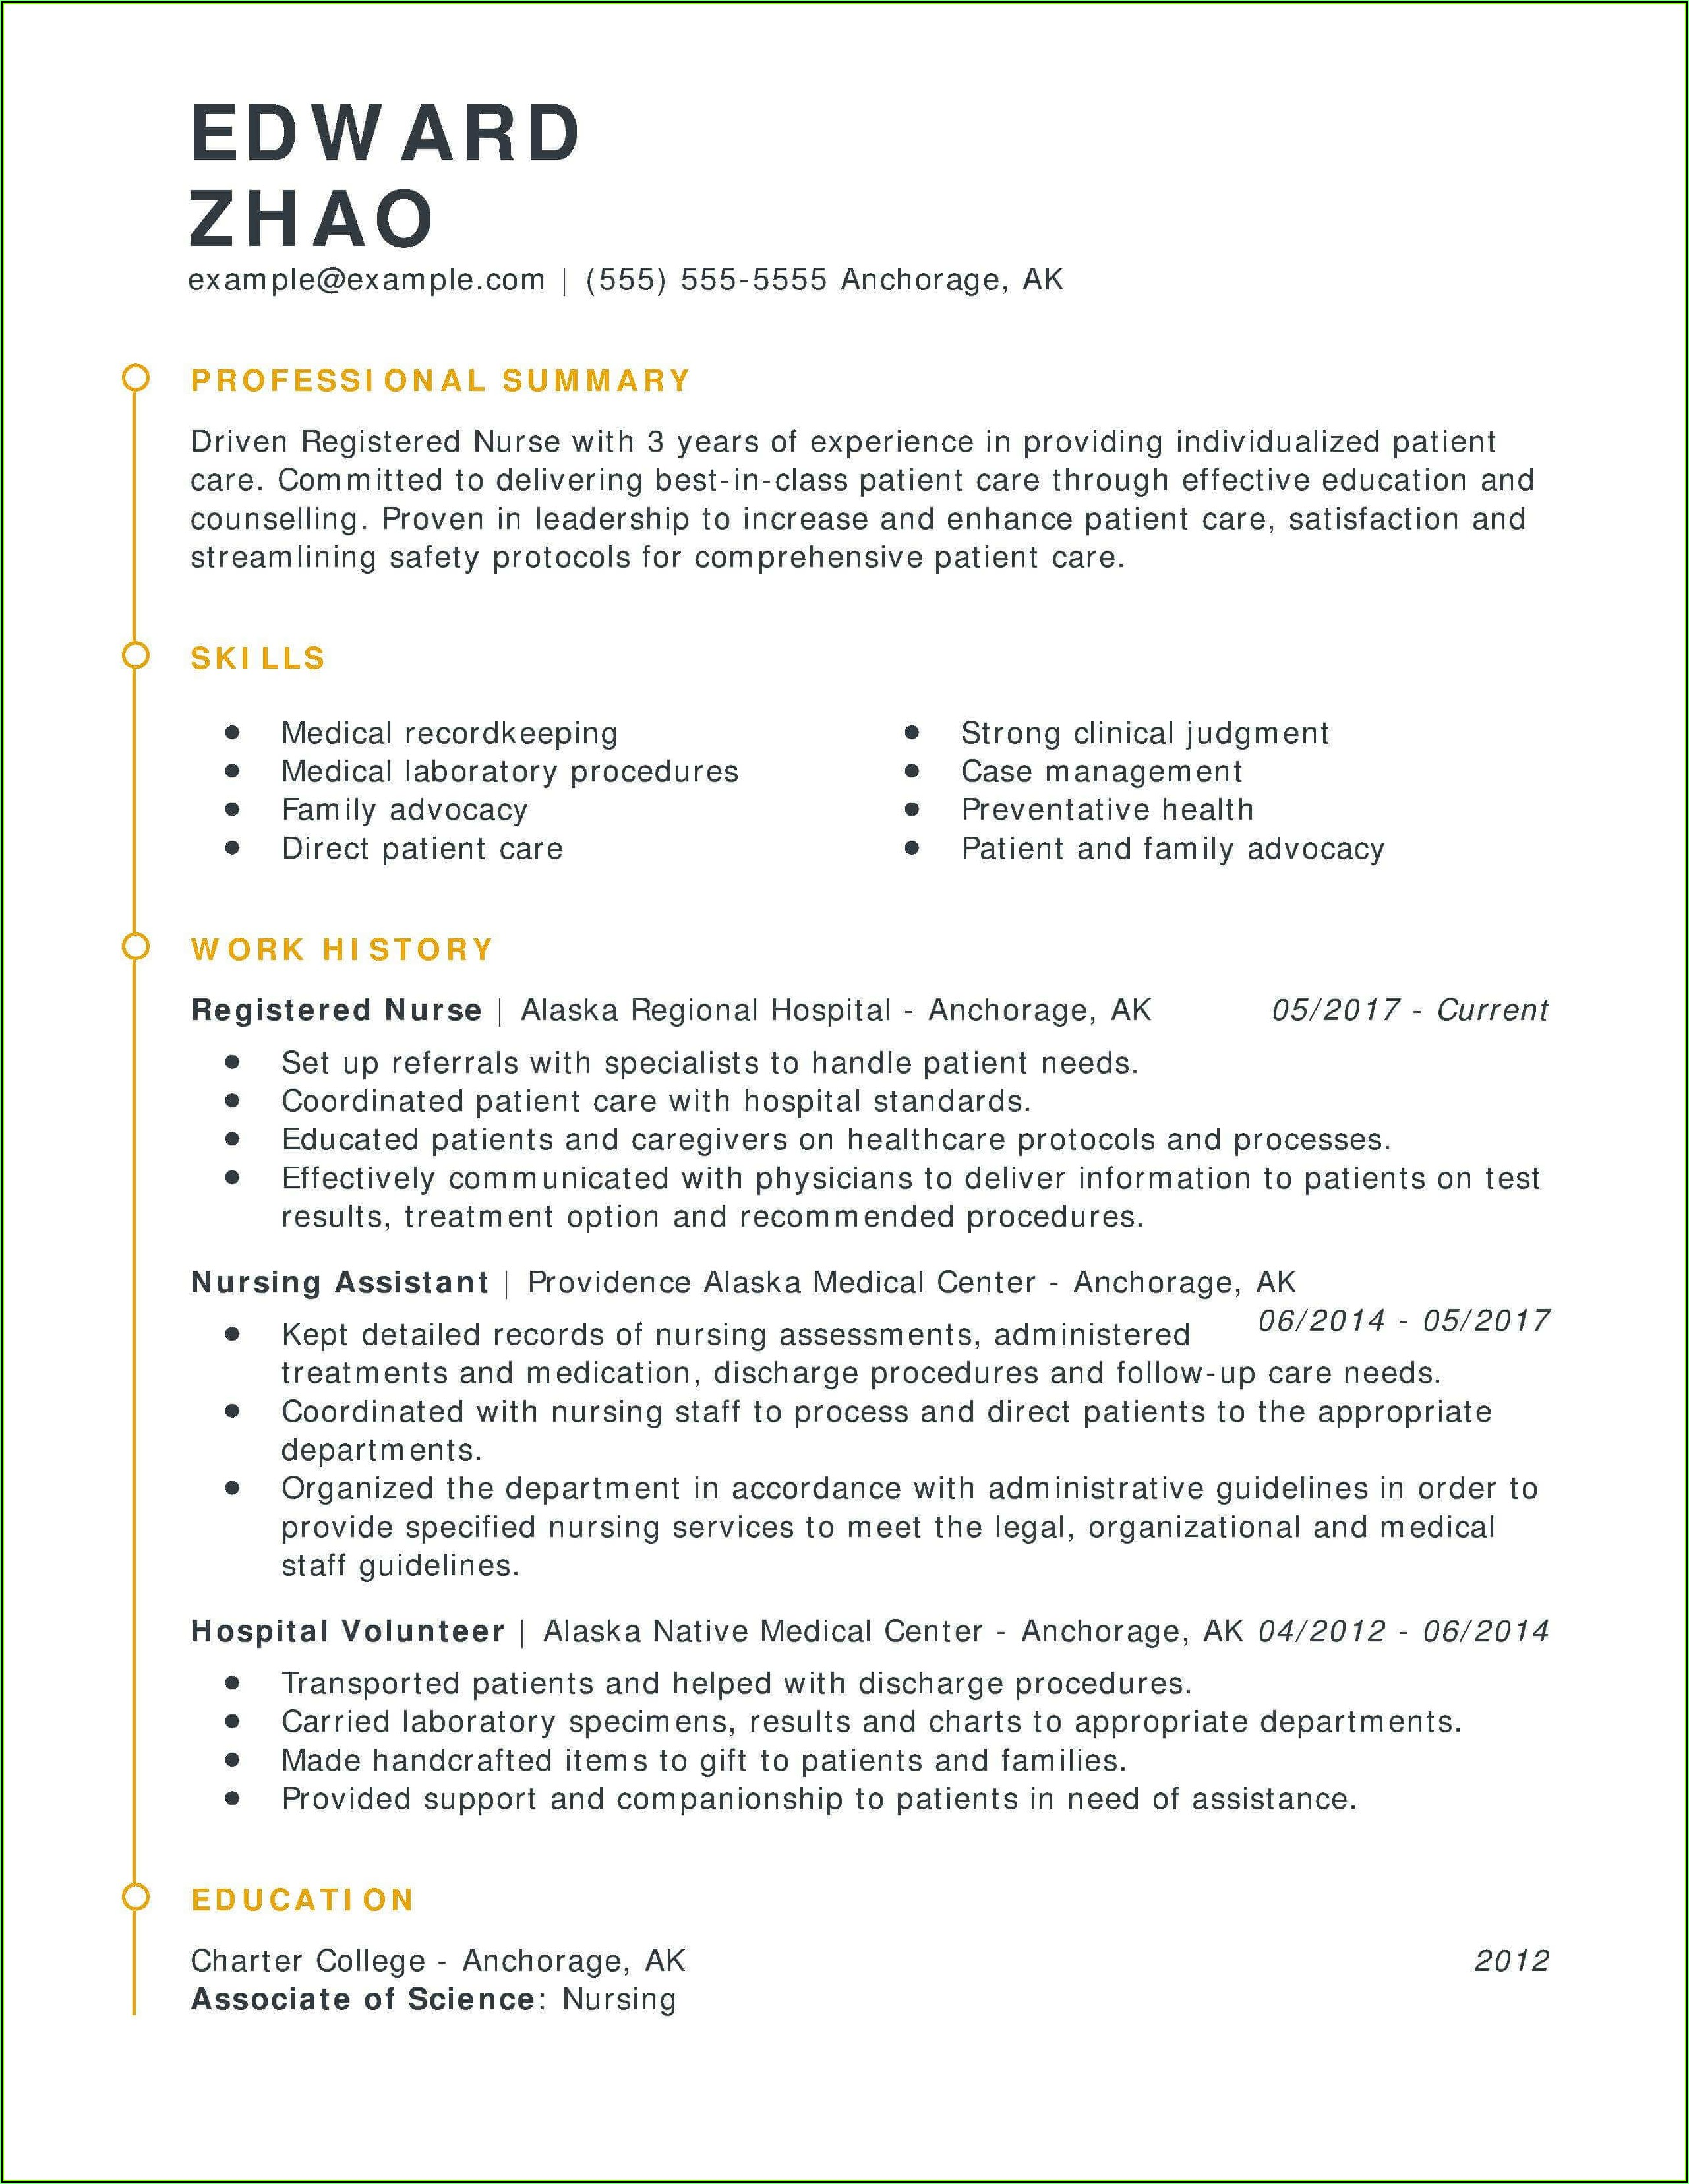 Sample Resume For Registered Nurses With Experience